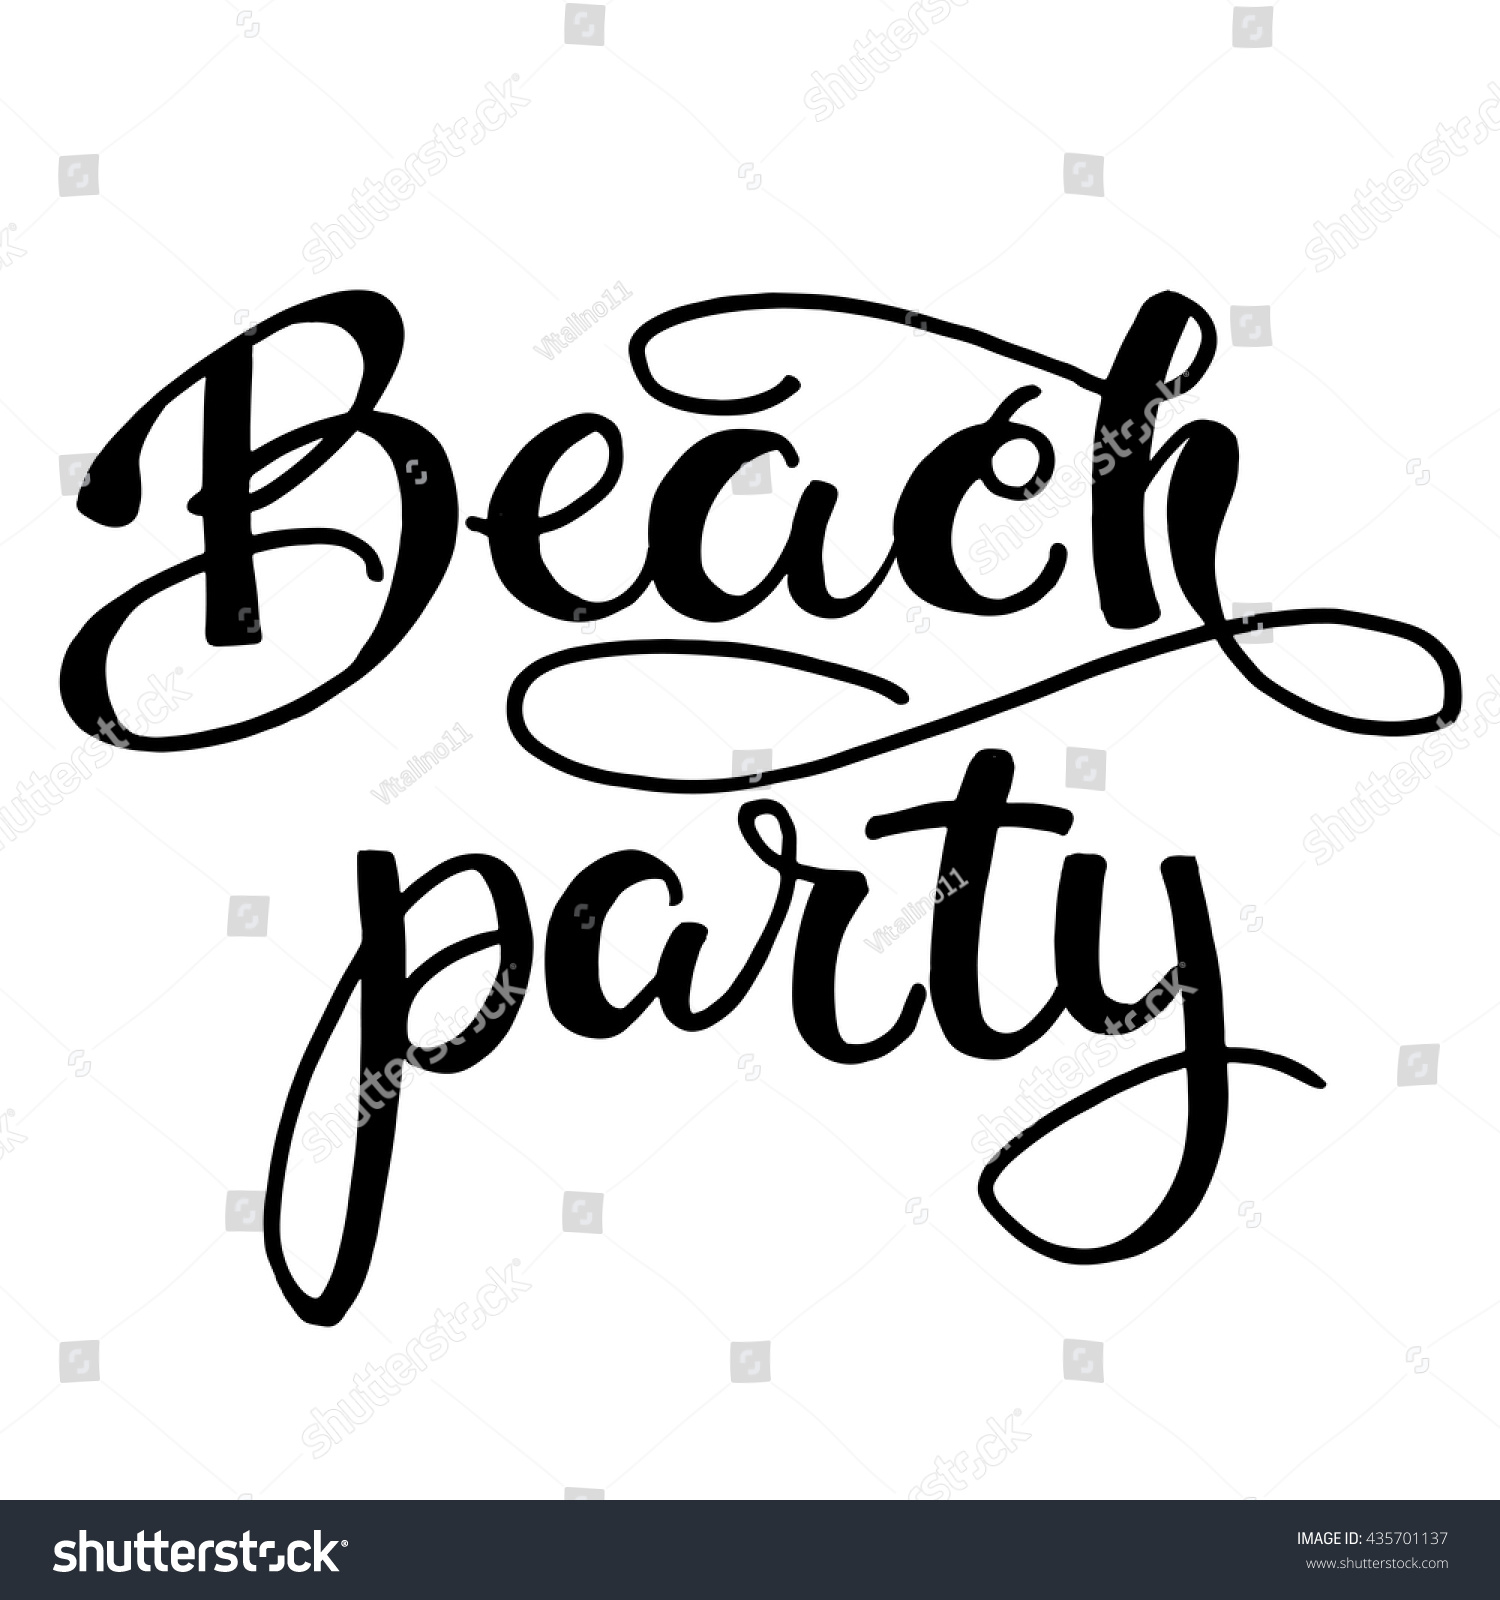 Beach Party Inspirational Summer Quote Black Brush Lettering Isolated On White Background